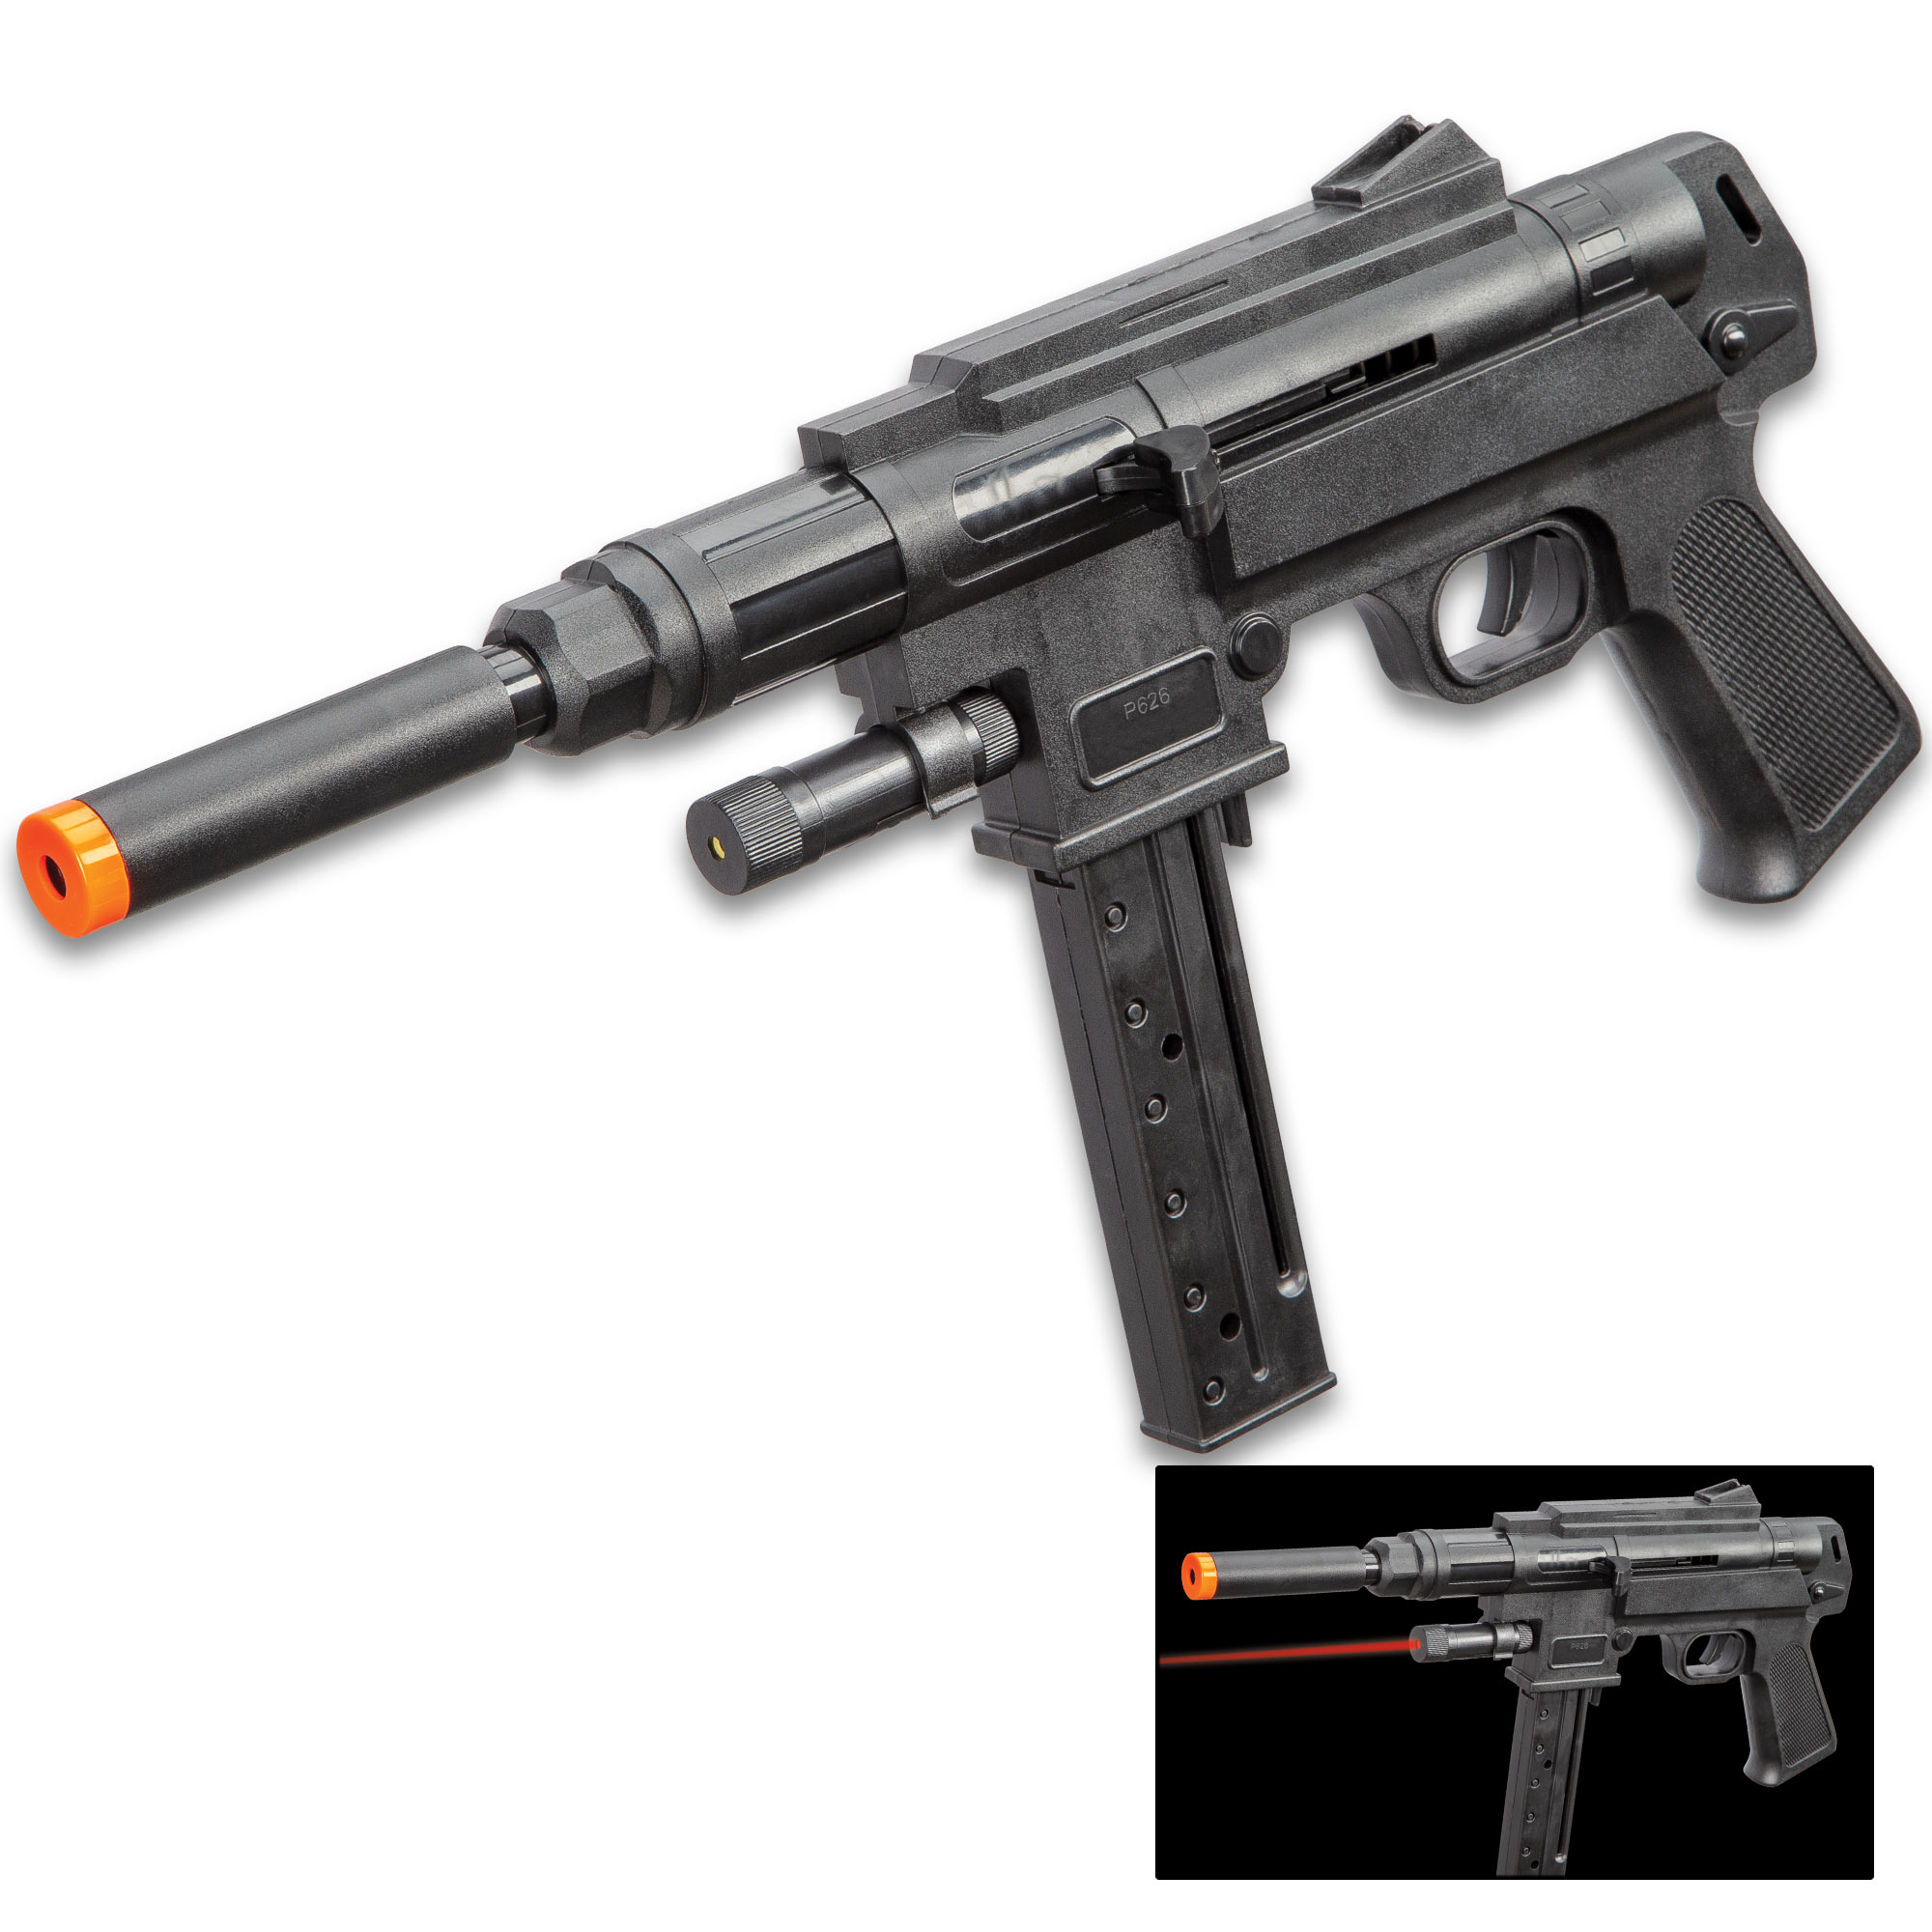 Spring Powered Mini Uzi Airsoft Gun With Red Laser - ABS